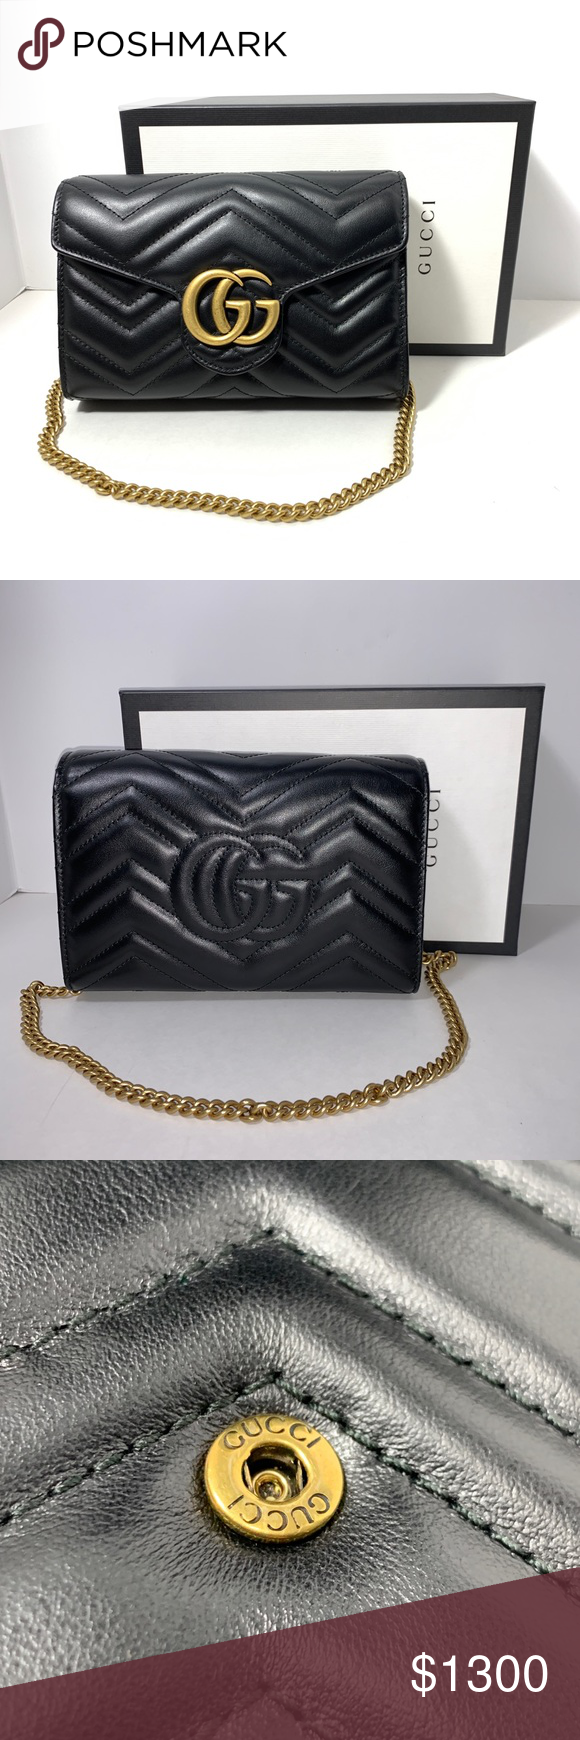 00c466c98 NEW GUCCI GG Marmont Matelassé Wallet On A Chain Notable for its  exceptional versatility, this